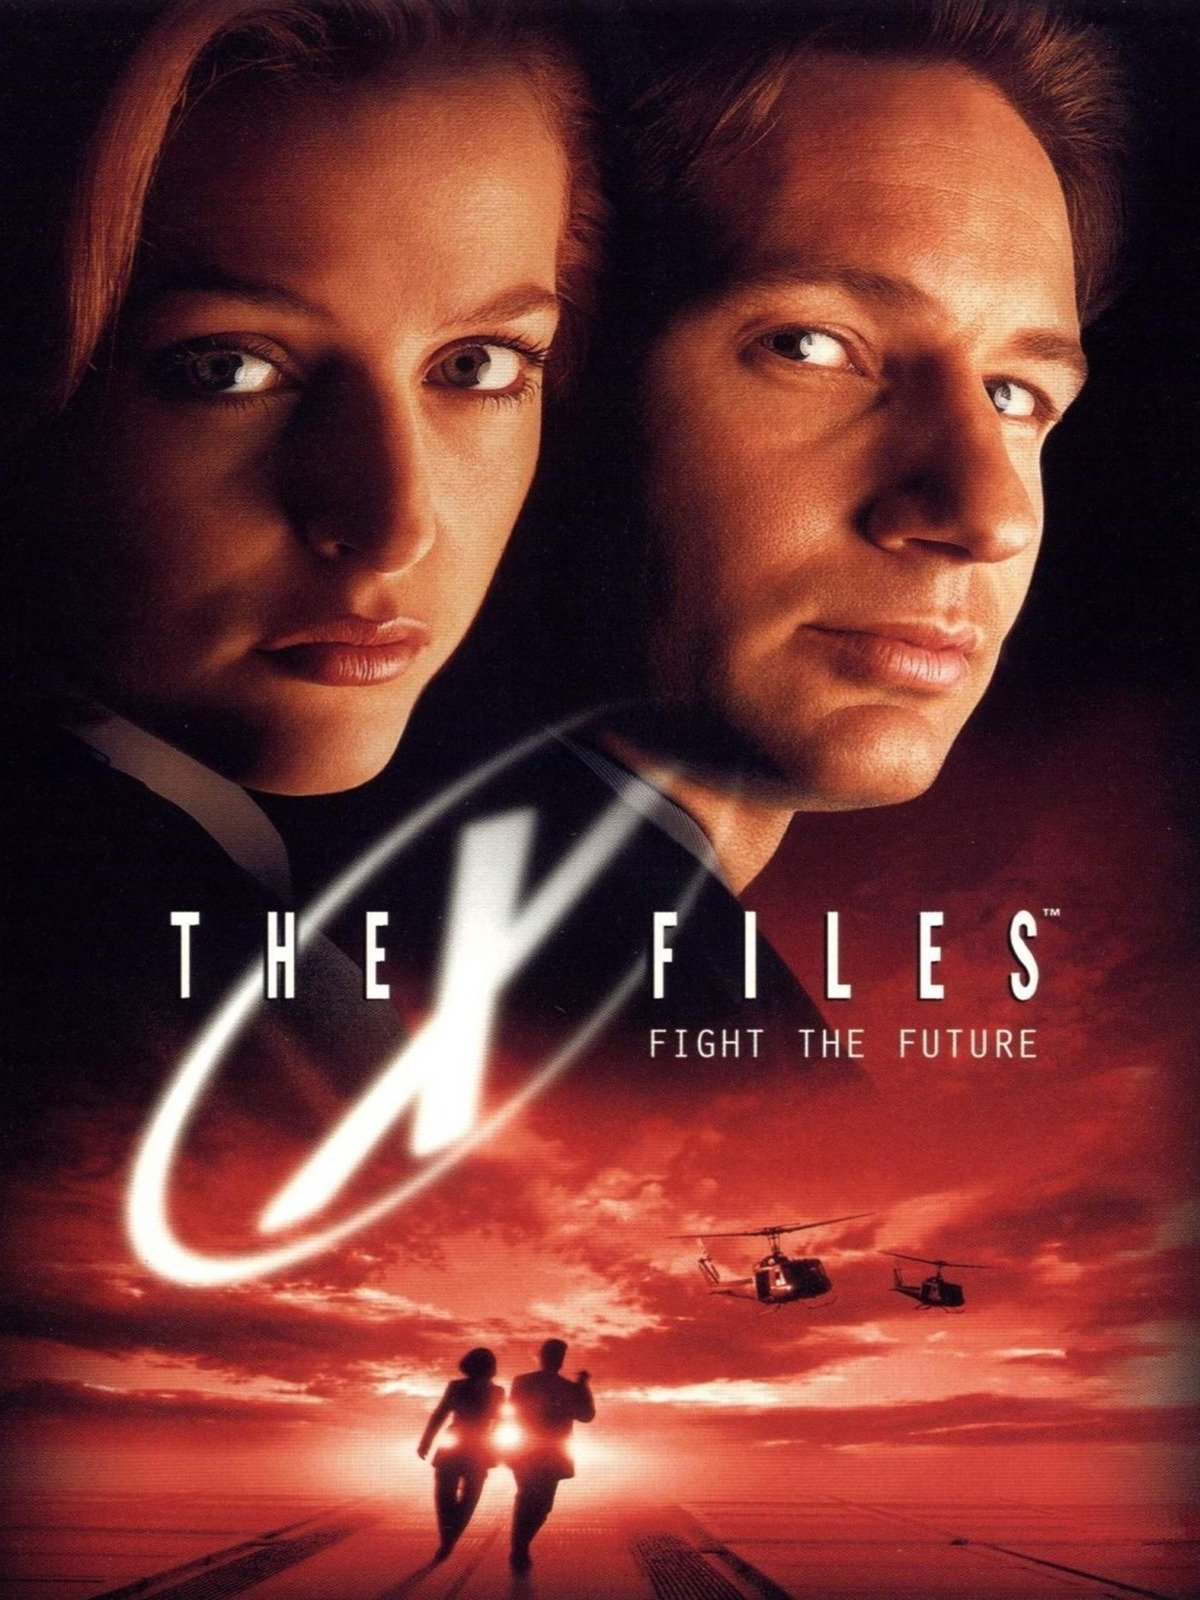 The X Files Season 1 Watch online now with Amazon Instant